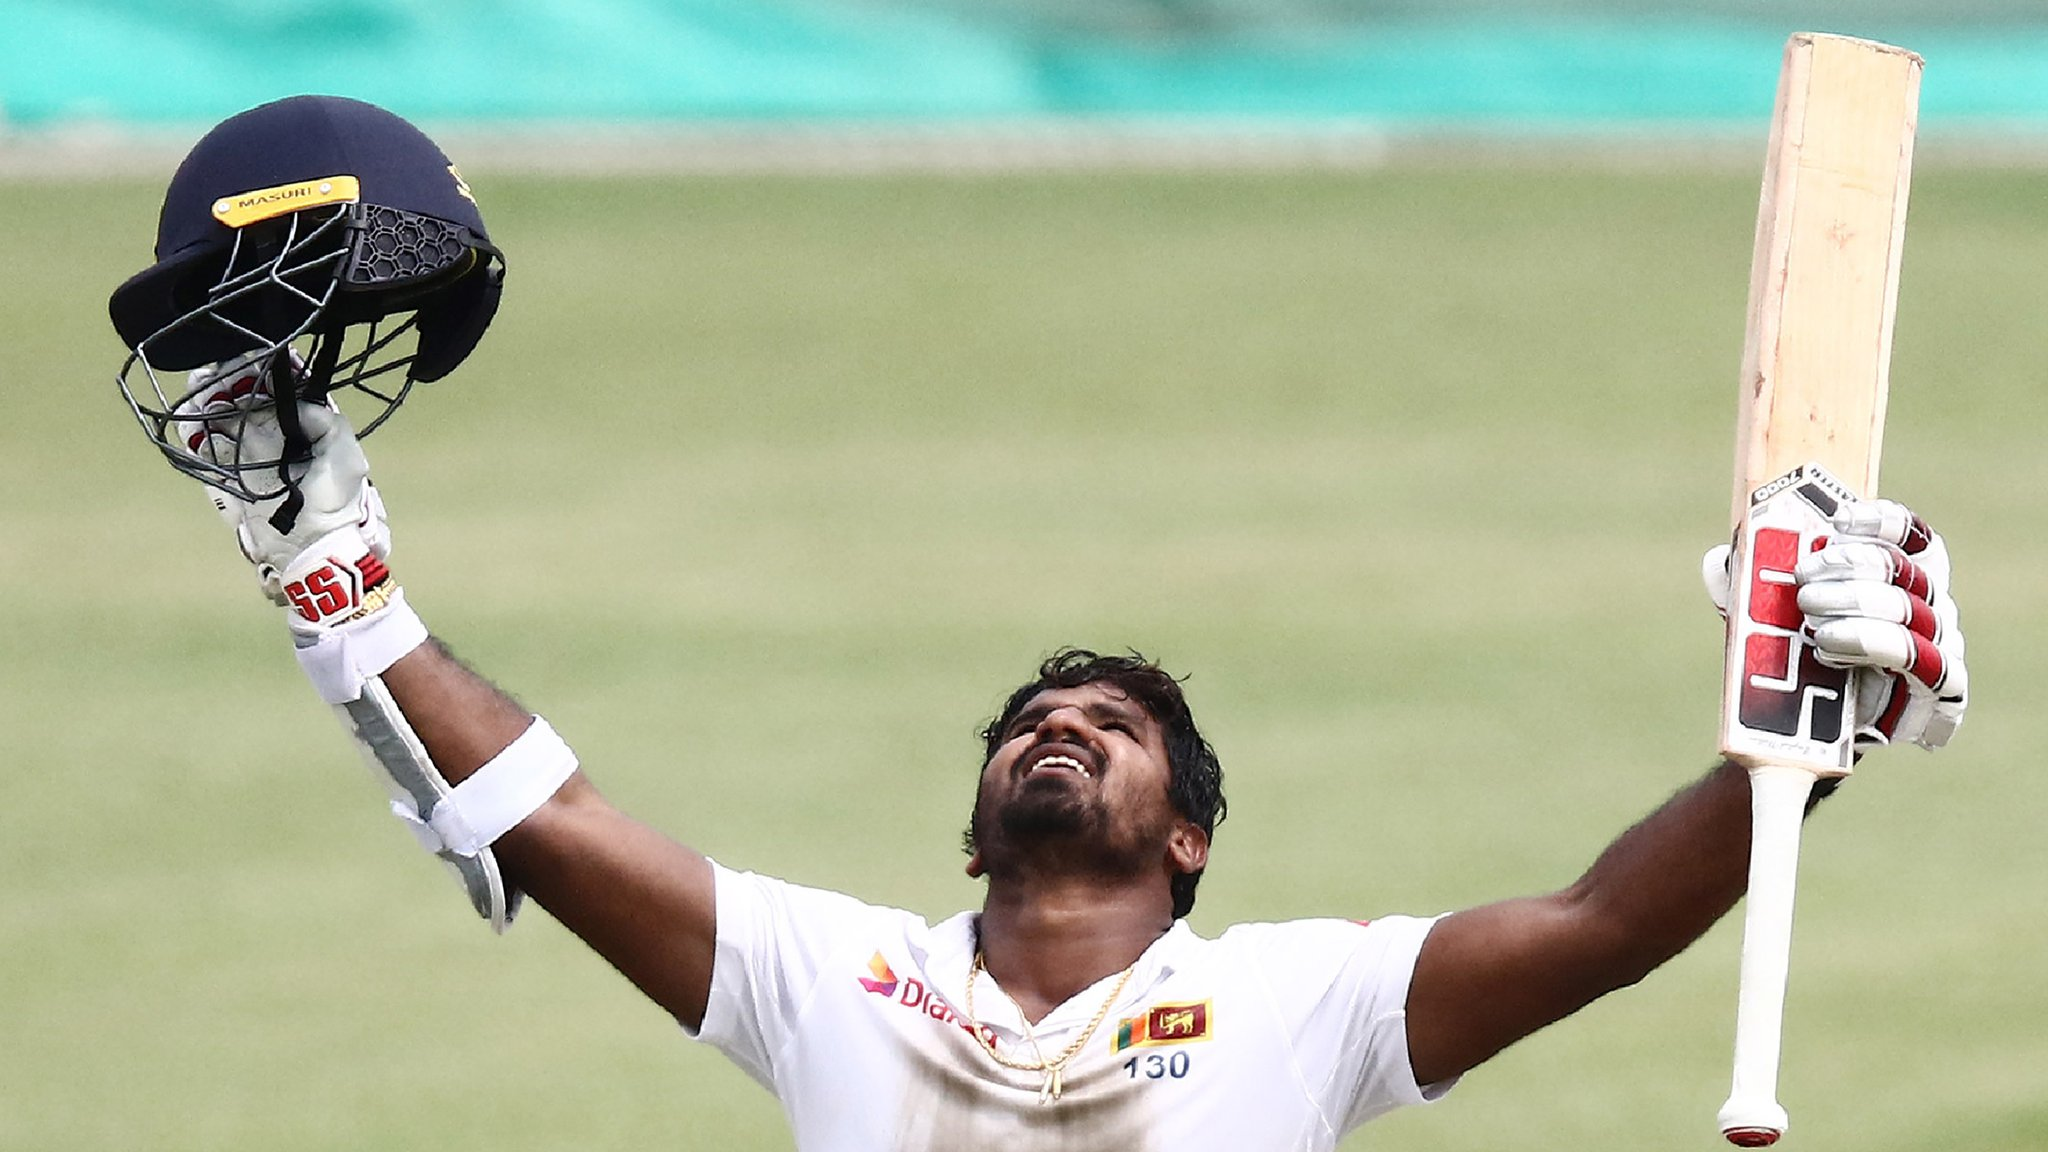 Perera's 153 & record last-wicket stand gives Sri Lanka stunning win in South Africa